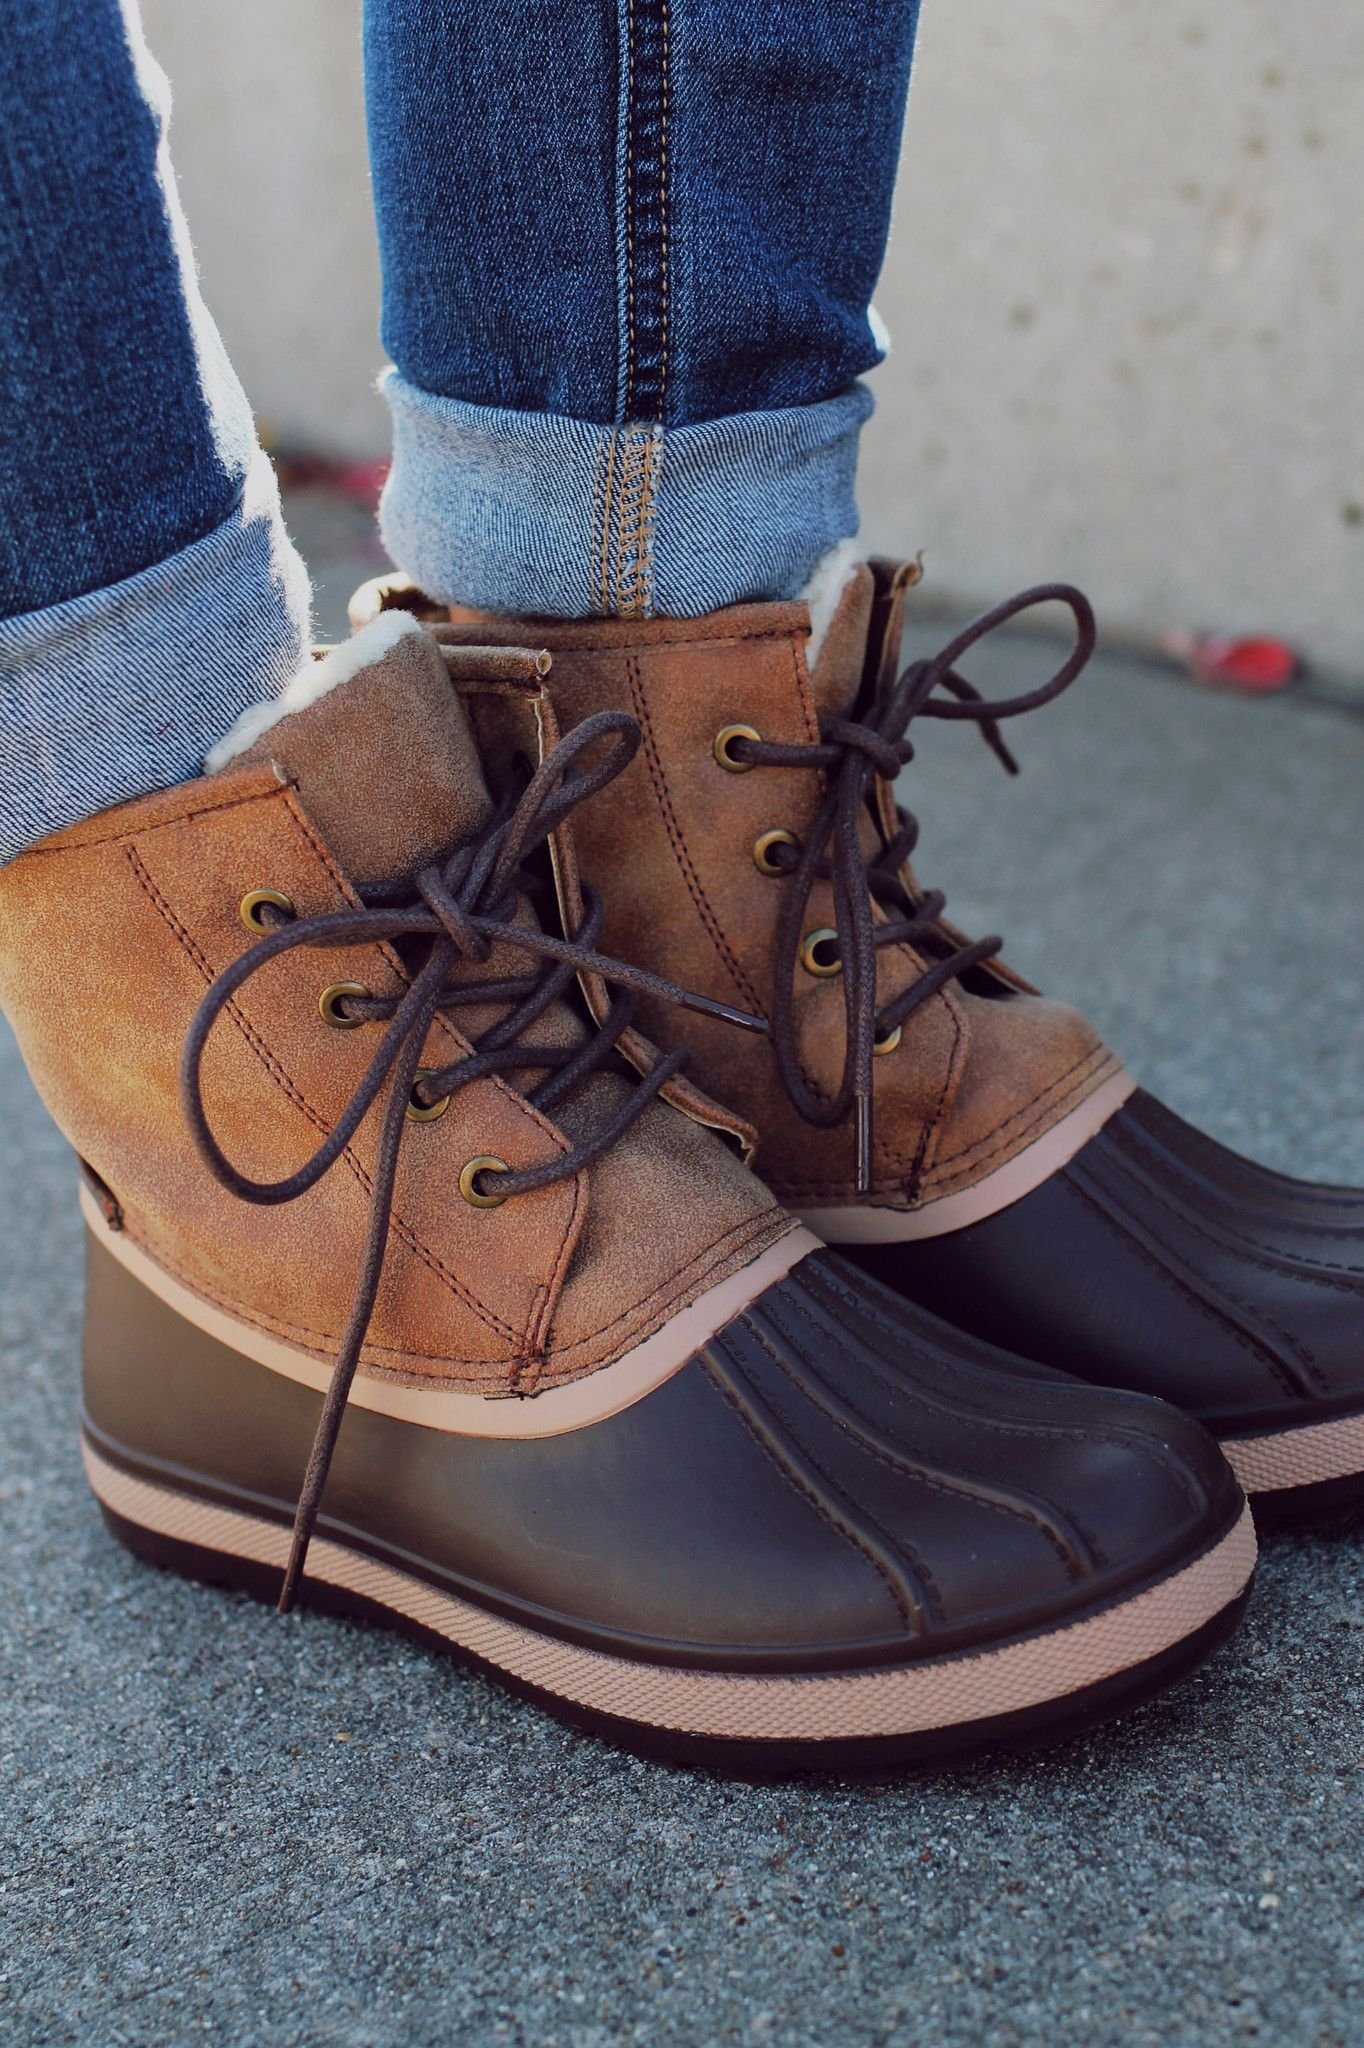 512435036e9 Brown Fur Lined Duck Boot Blizzard-05 – UOIOnline.com: Women's ...